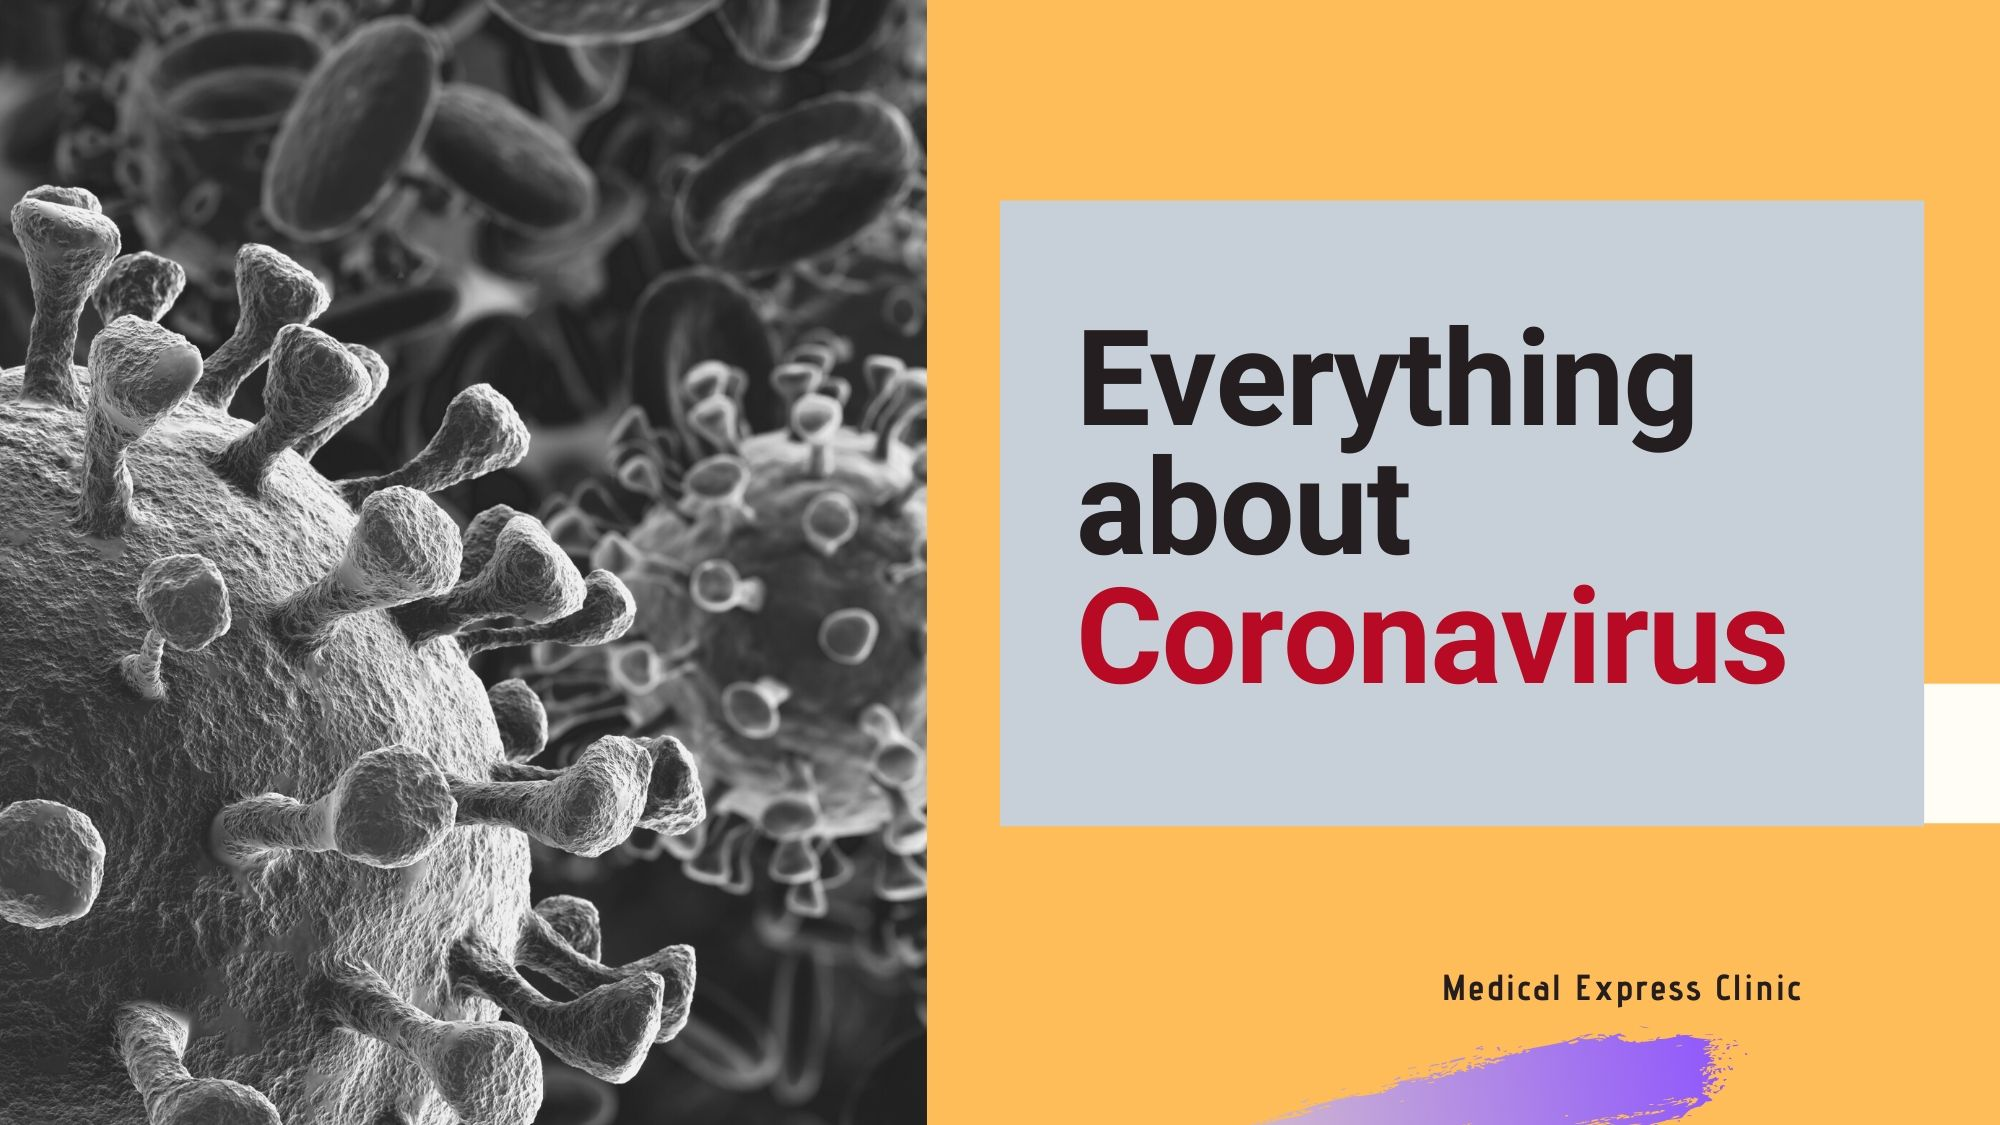 About Coronavirus and What to do with its Symptoms